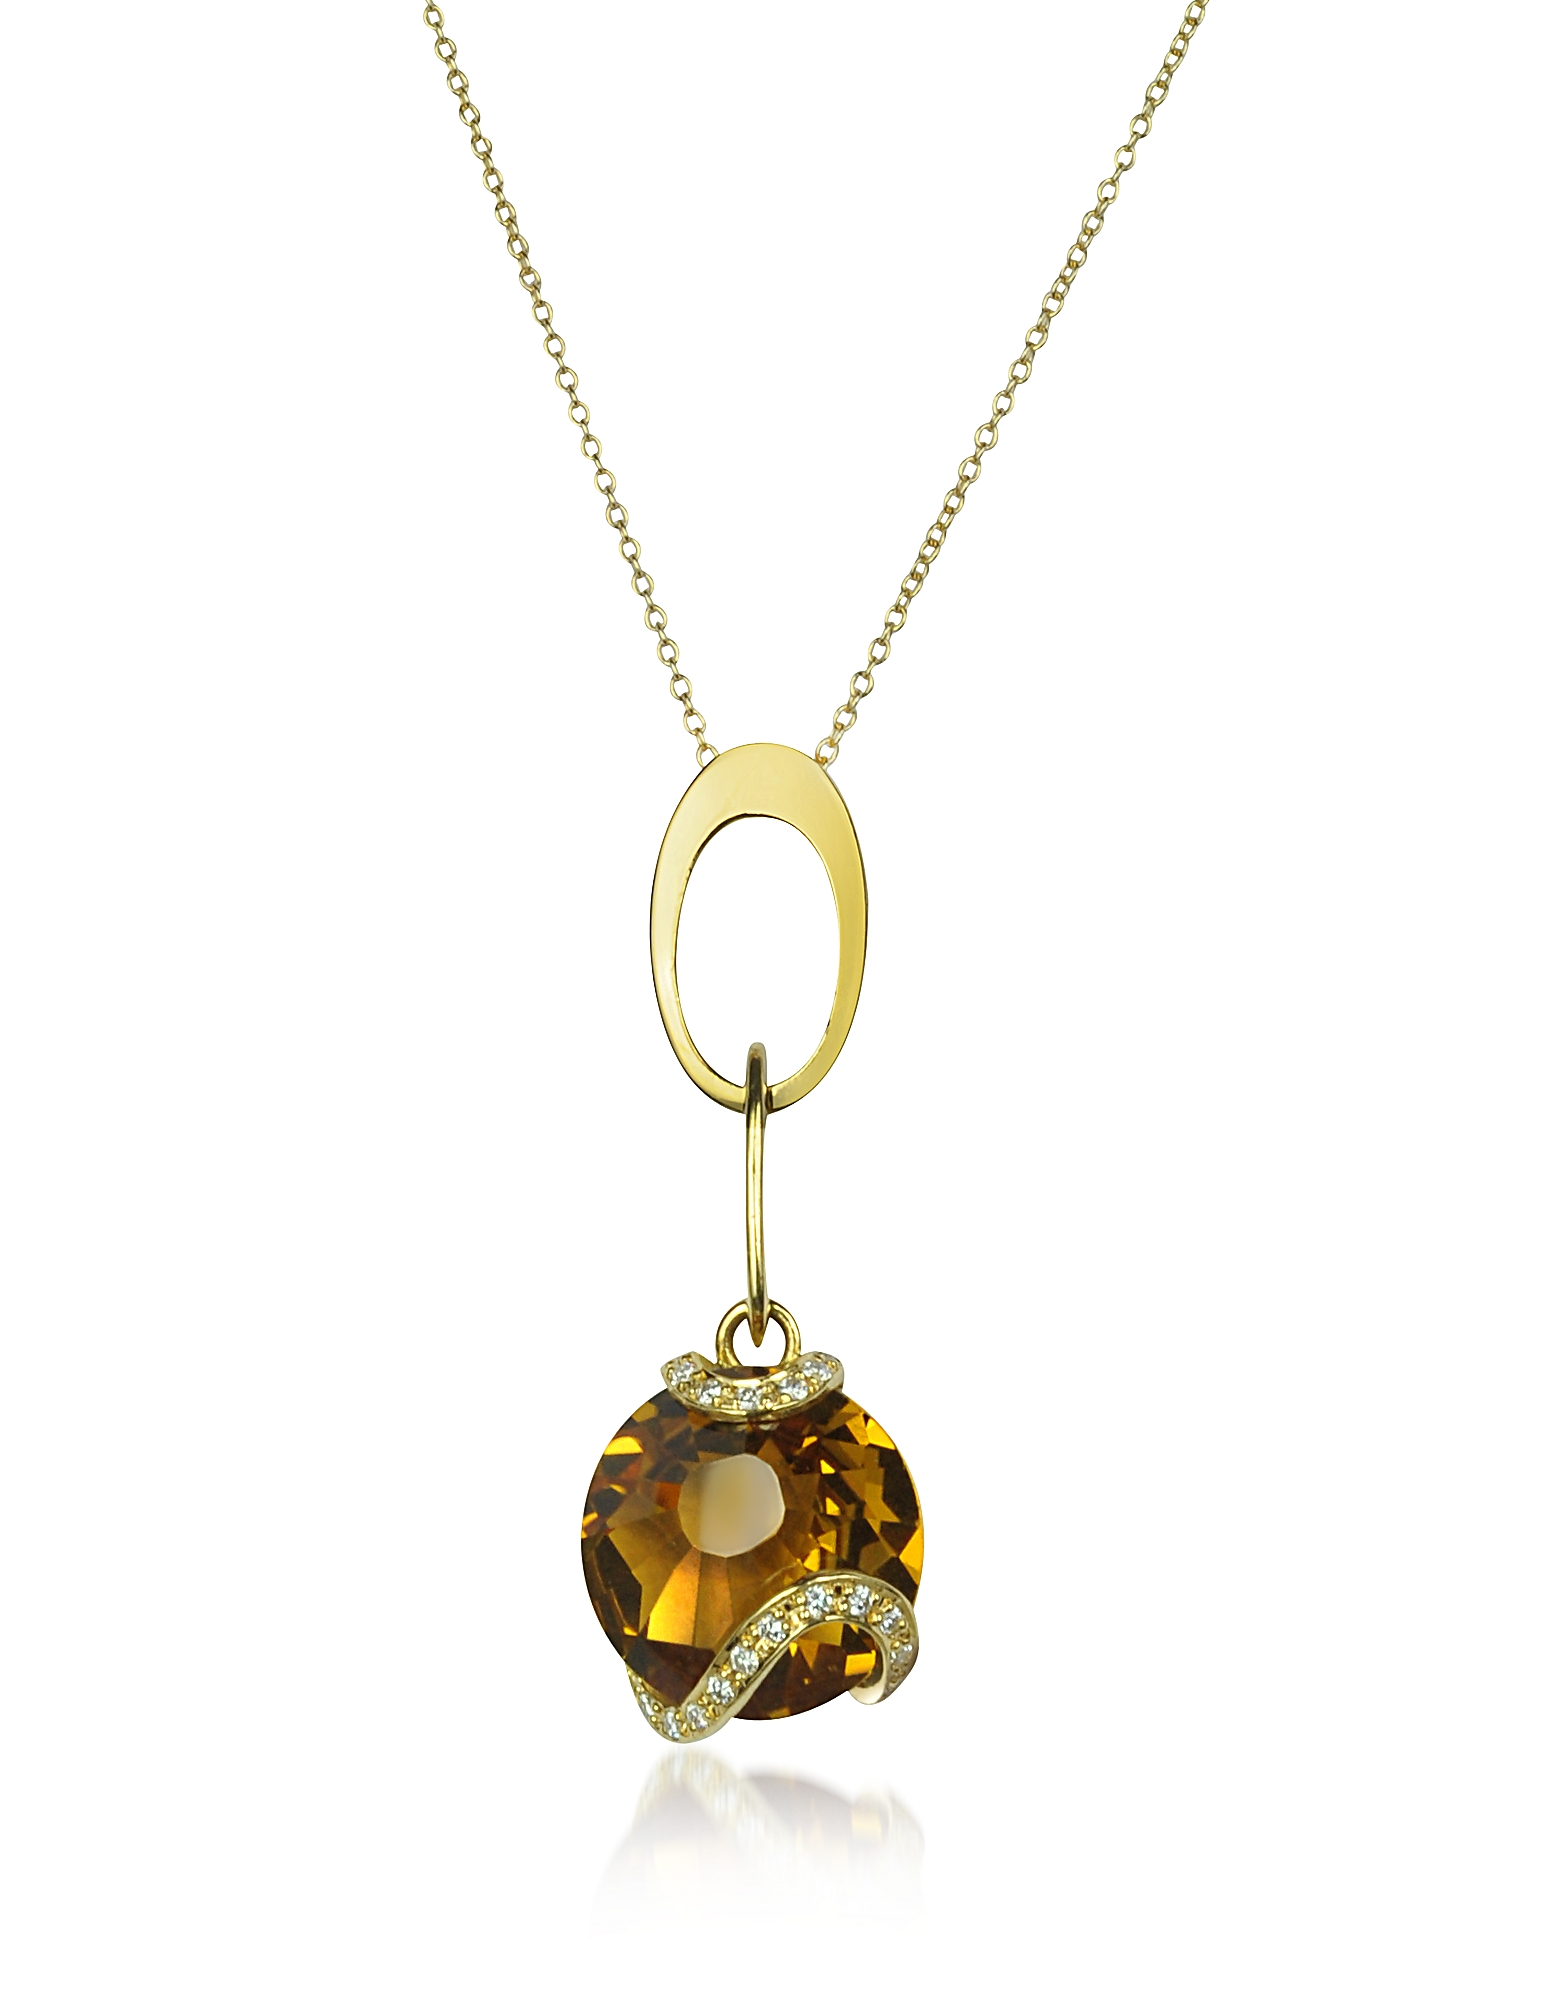 Incanto Royale Designer Necklaces, Citrine and Diamond 18K Gold Charm Necklace